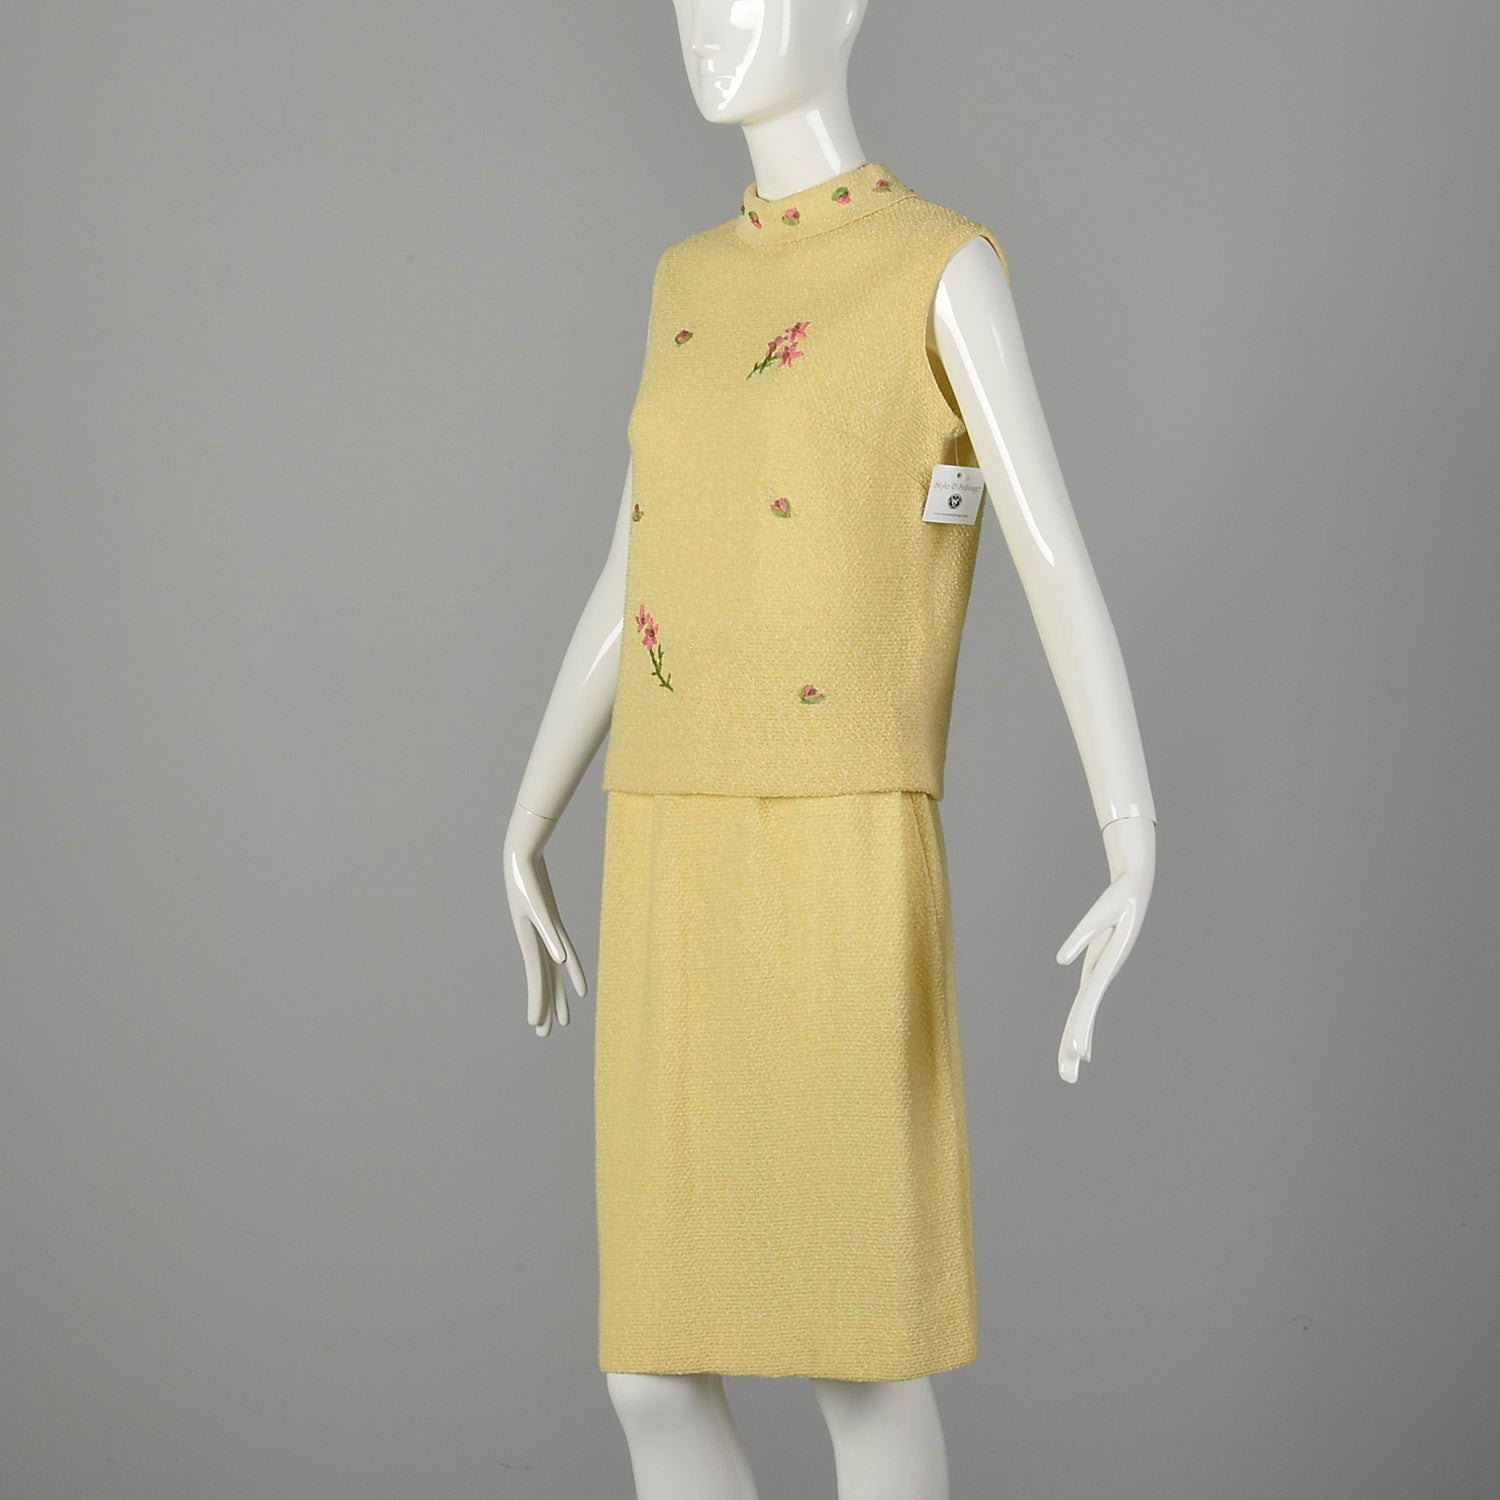 Medium 1960s Yellow Knit Outfit Sleeveless Top and Skirt